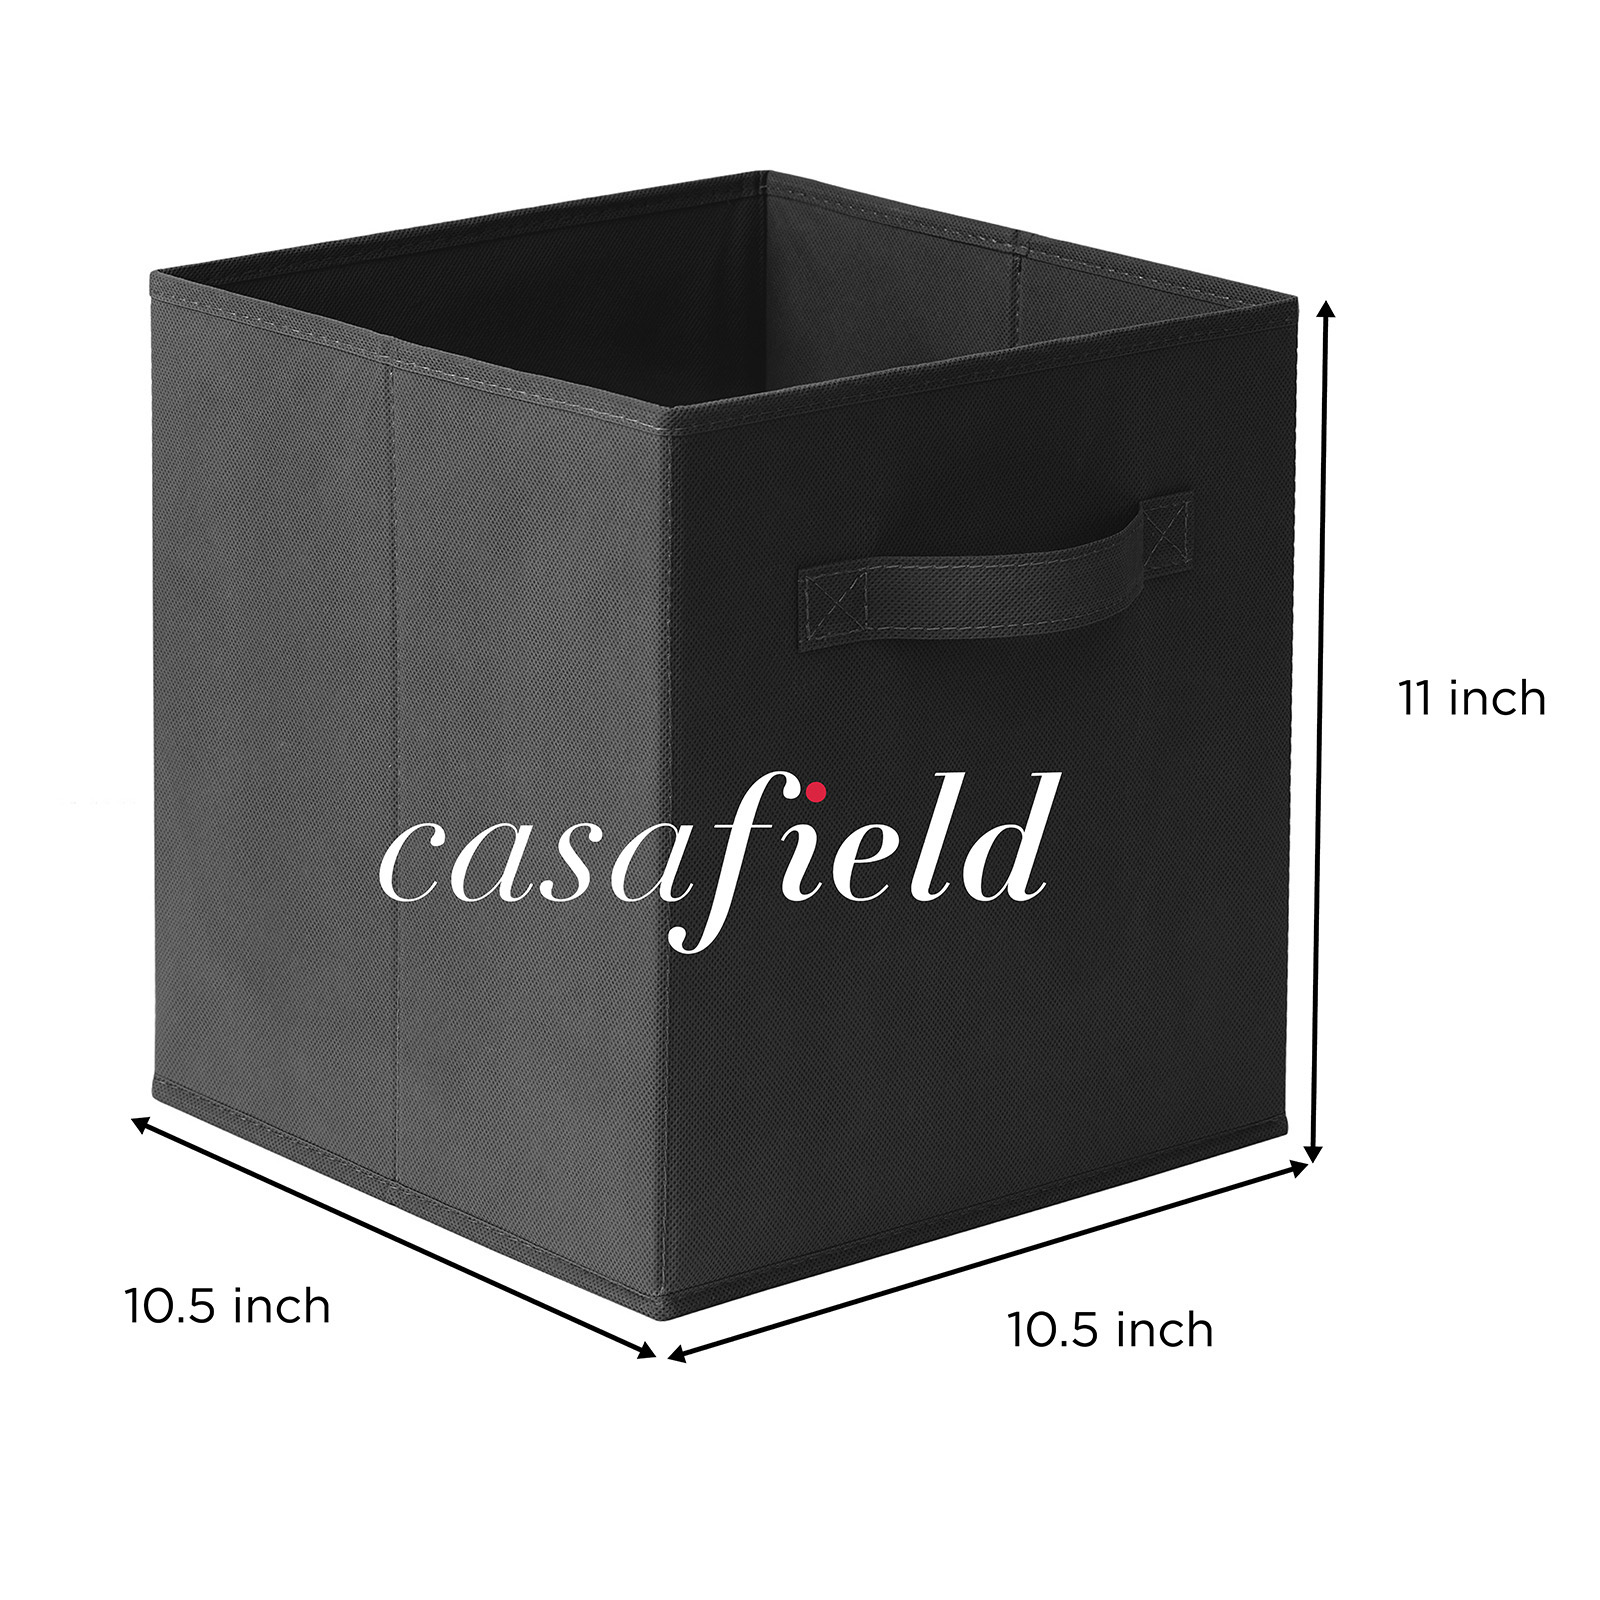 6-Collapsible-Foldable-Cloth-Fabric-Cubby-Cube-Storage-Bins-Baskets-for-Shelves thumbnail 15